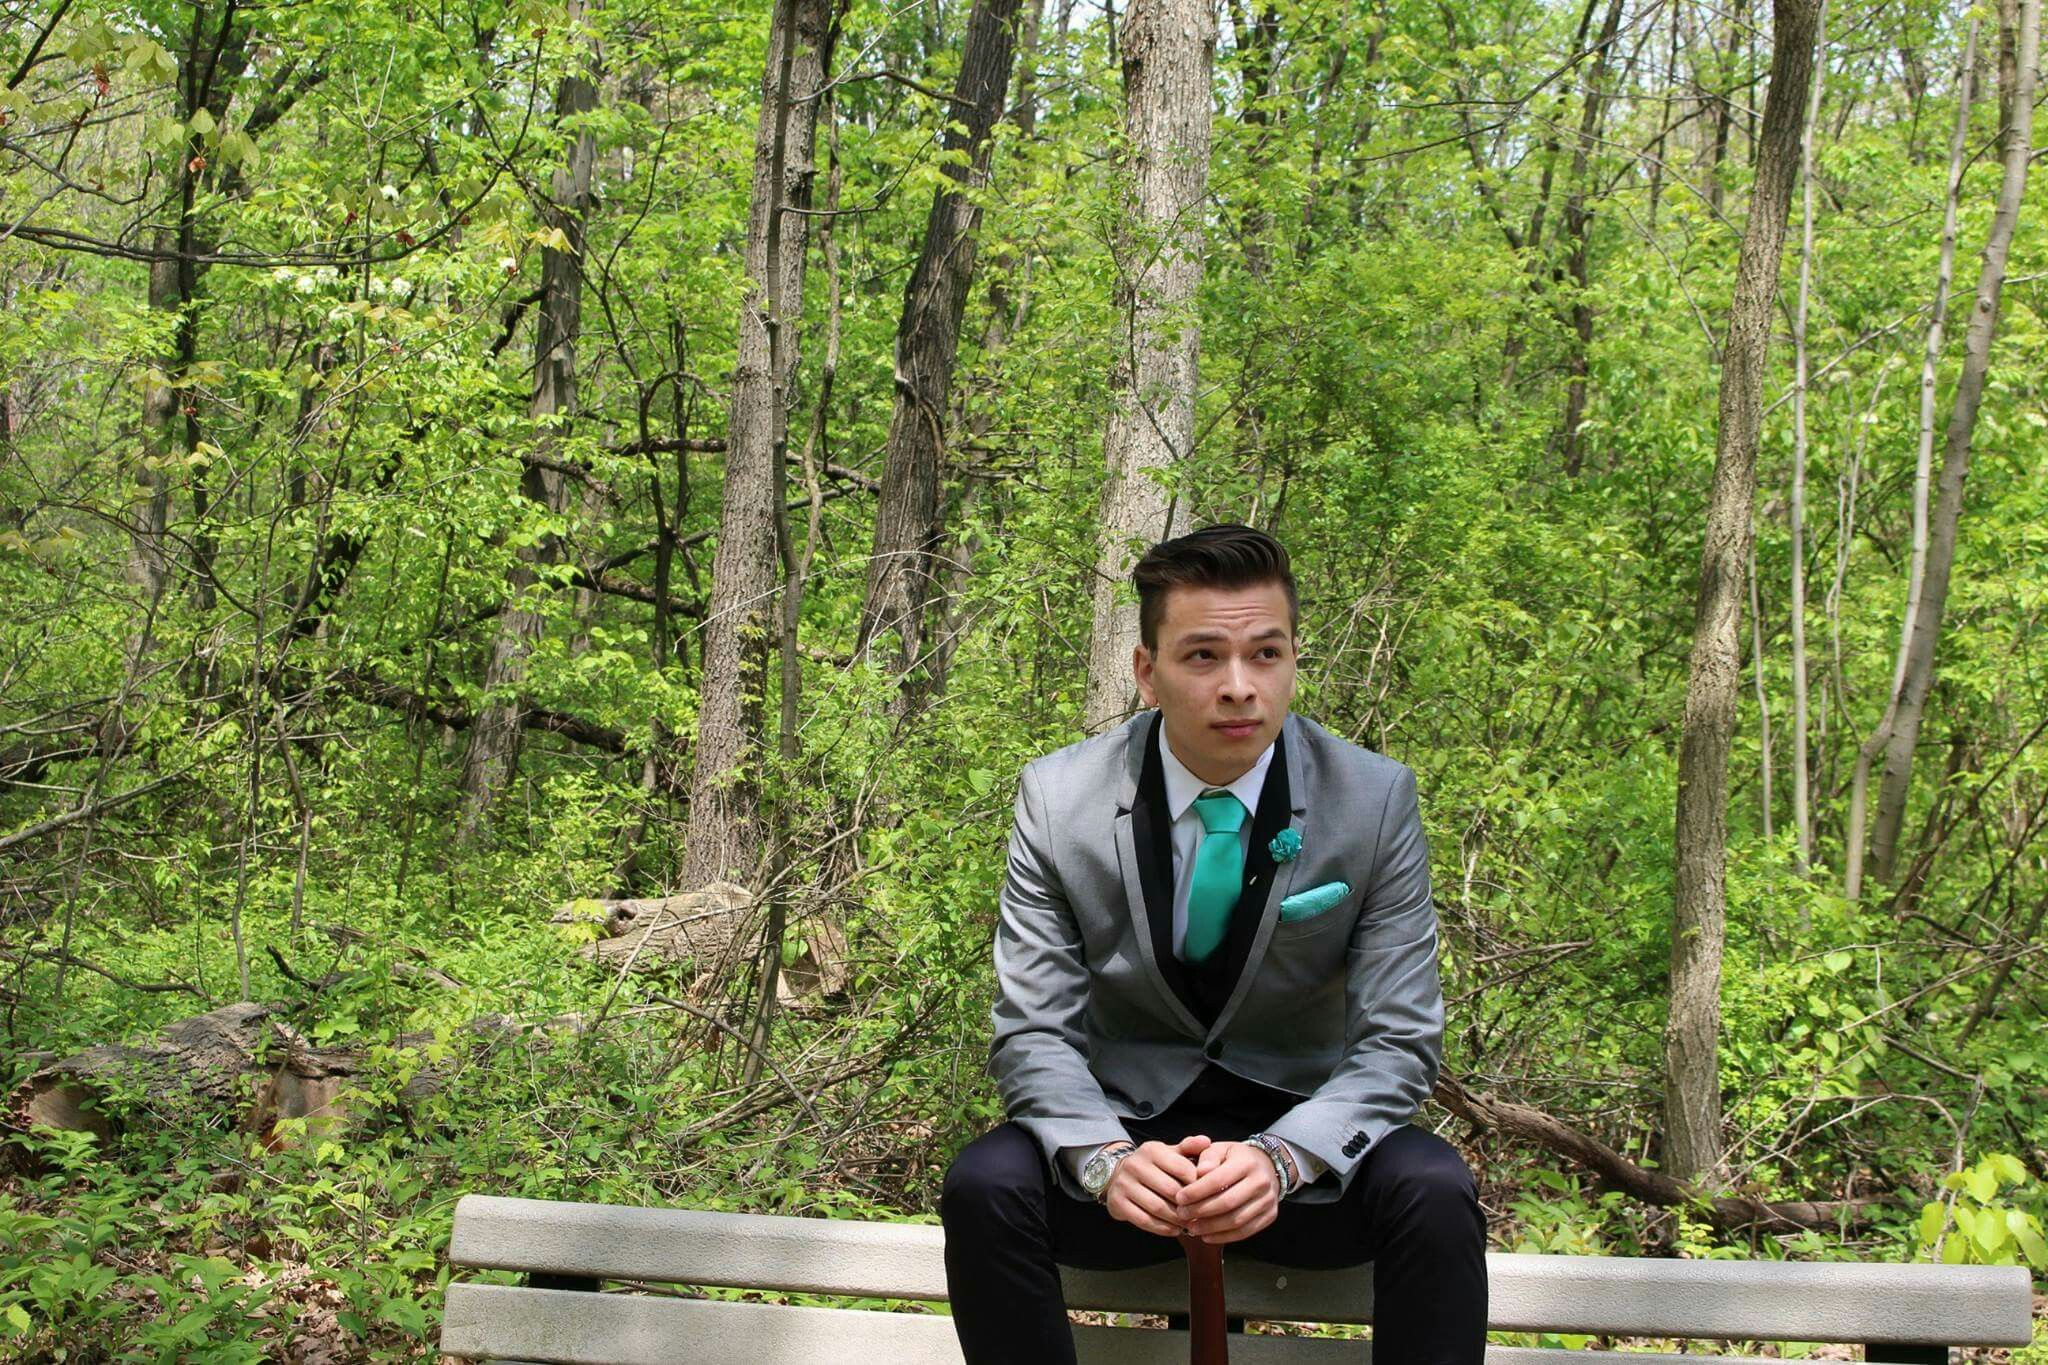 Just a few prom photos :p